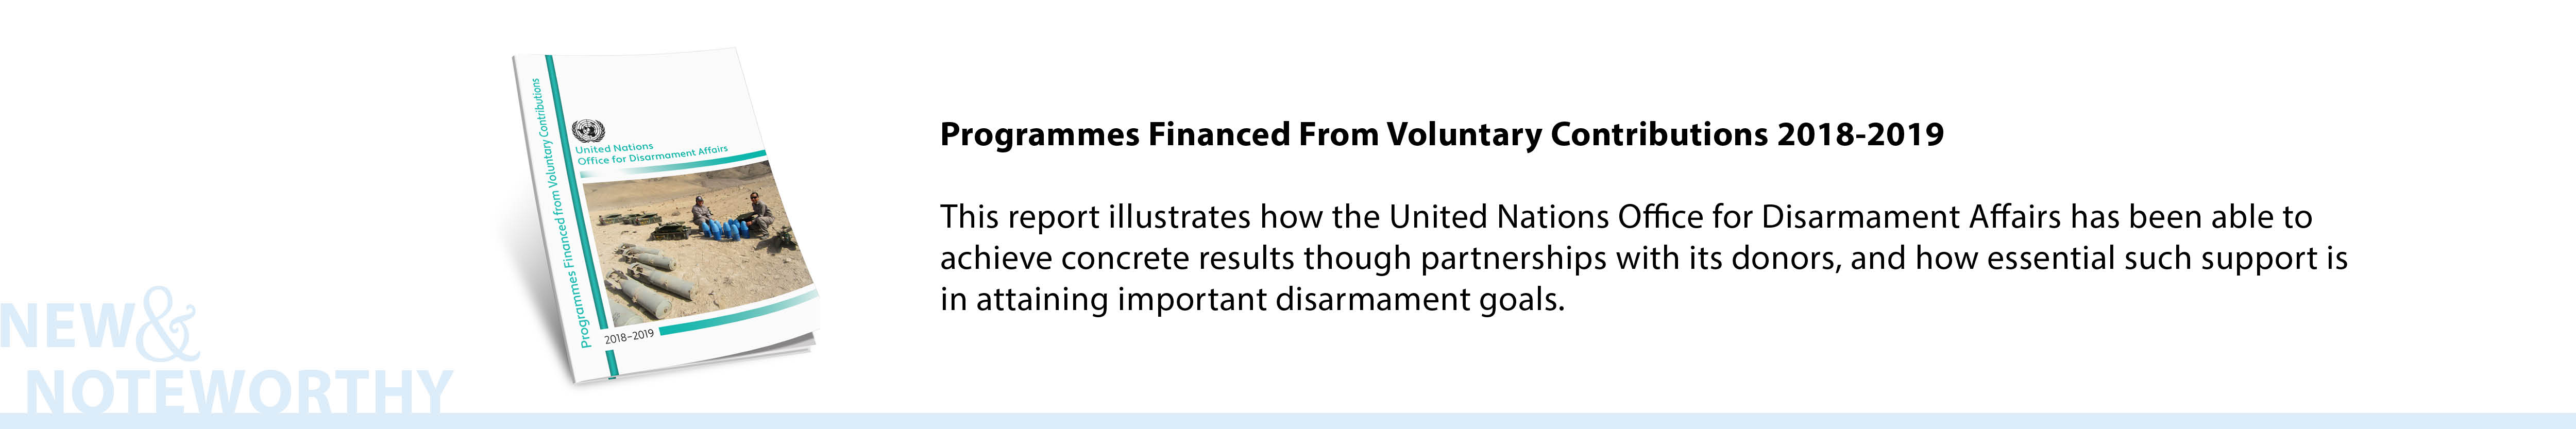 Programmes Financed From Voluntary Contributions 2018-2019 - This report illustrates how the United Nations Office for Disarmament Affairs has been able to achieve concrete results through partnerships with its donors, and how essential such support is in attaining important disarmament goals.